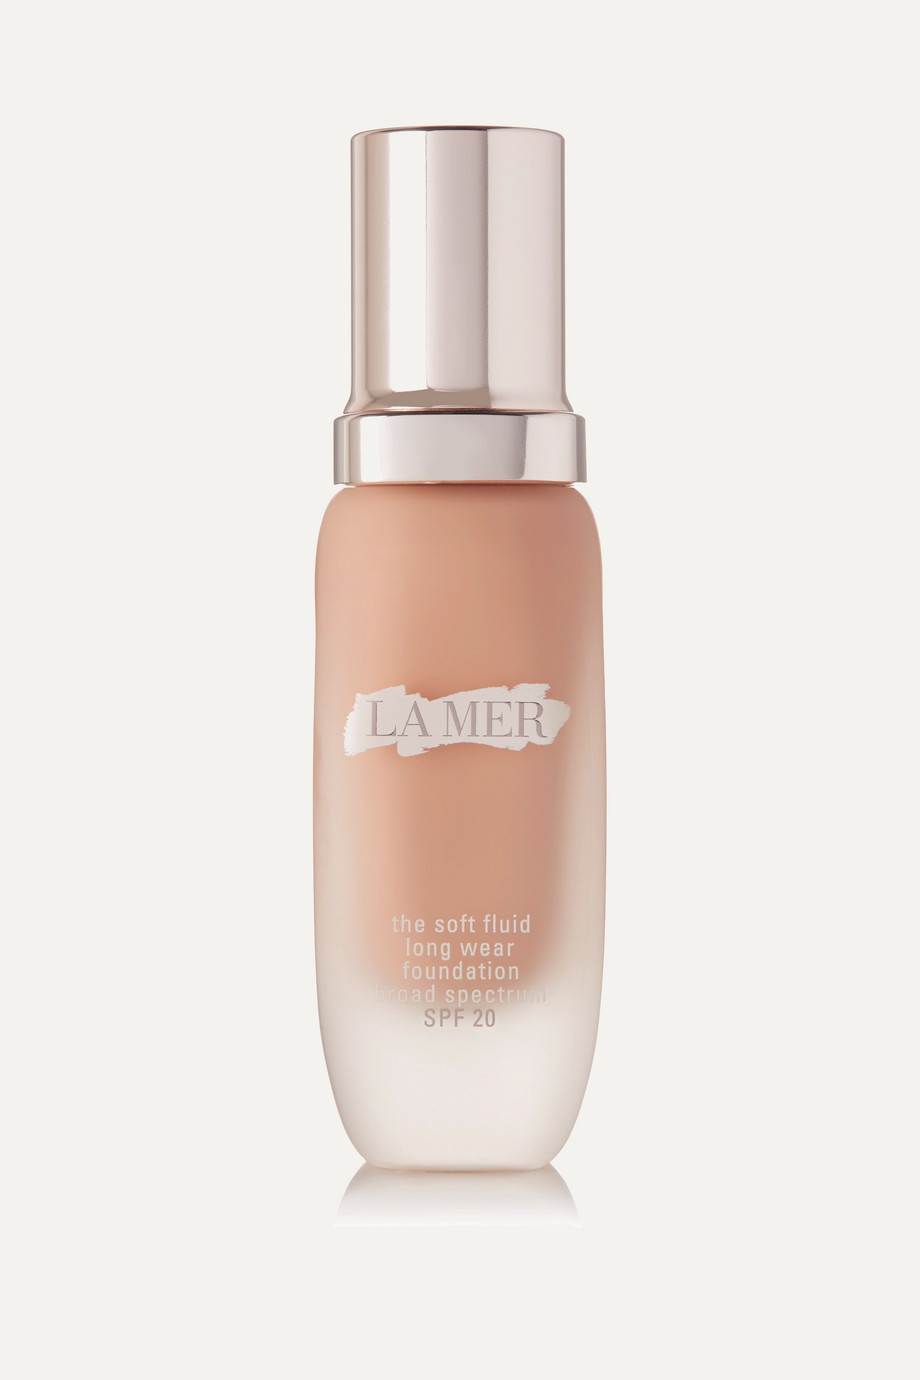 La Mer Soft Fluid Long Wear Foundation - Honey, 30ml